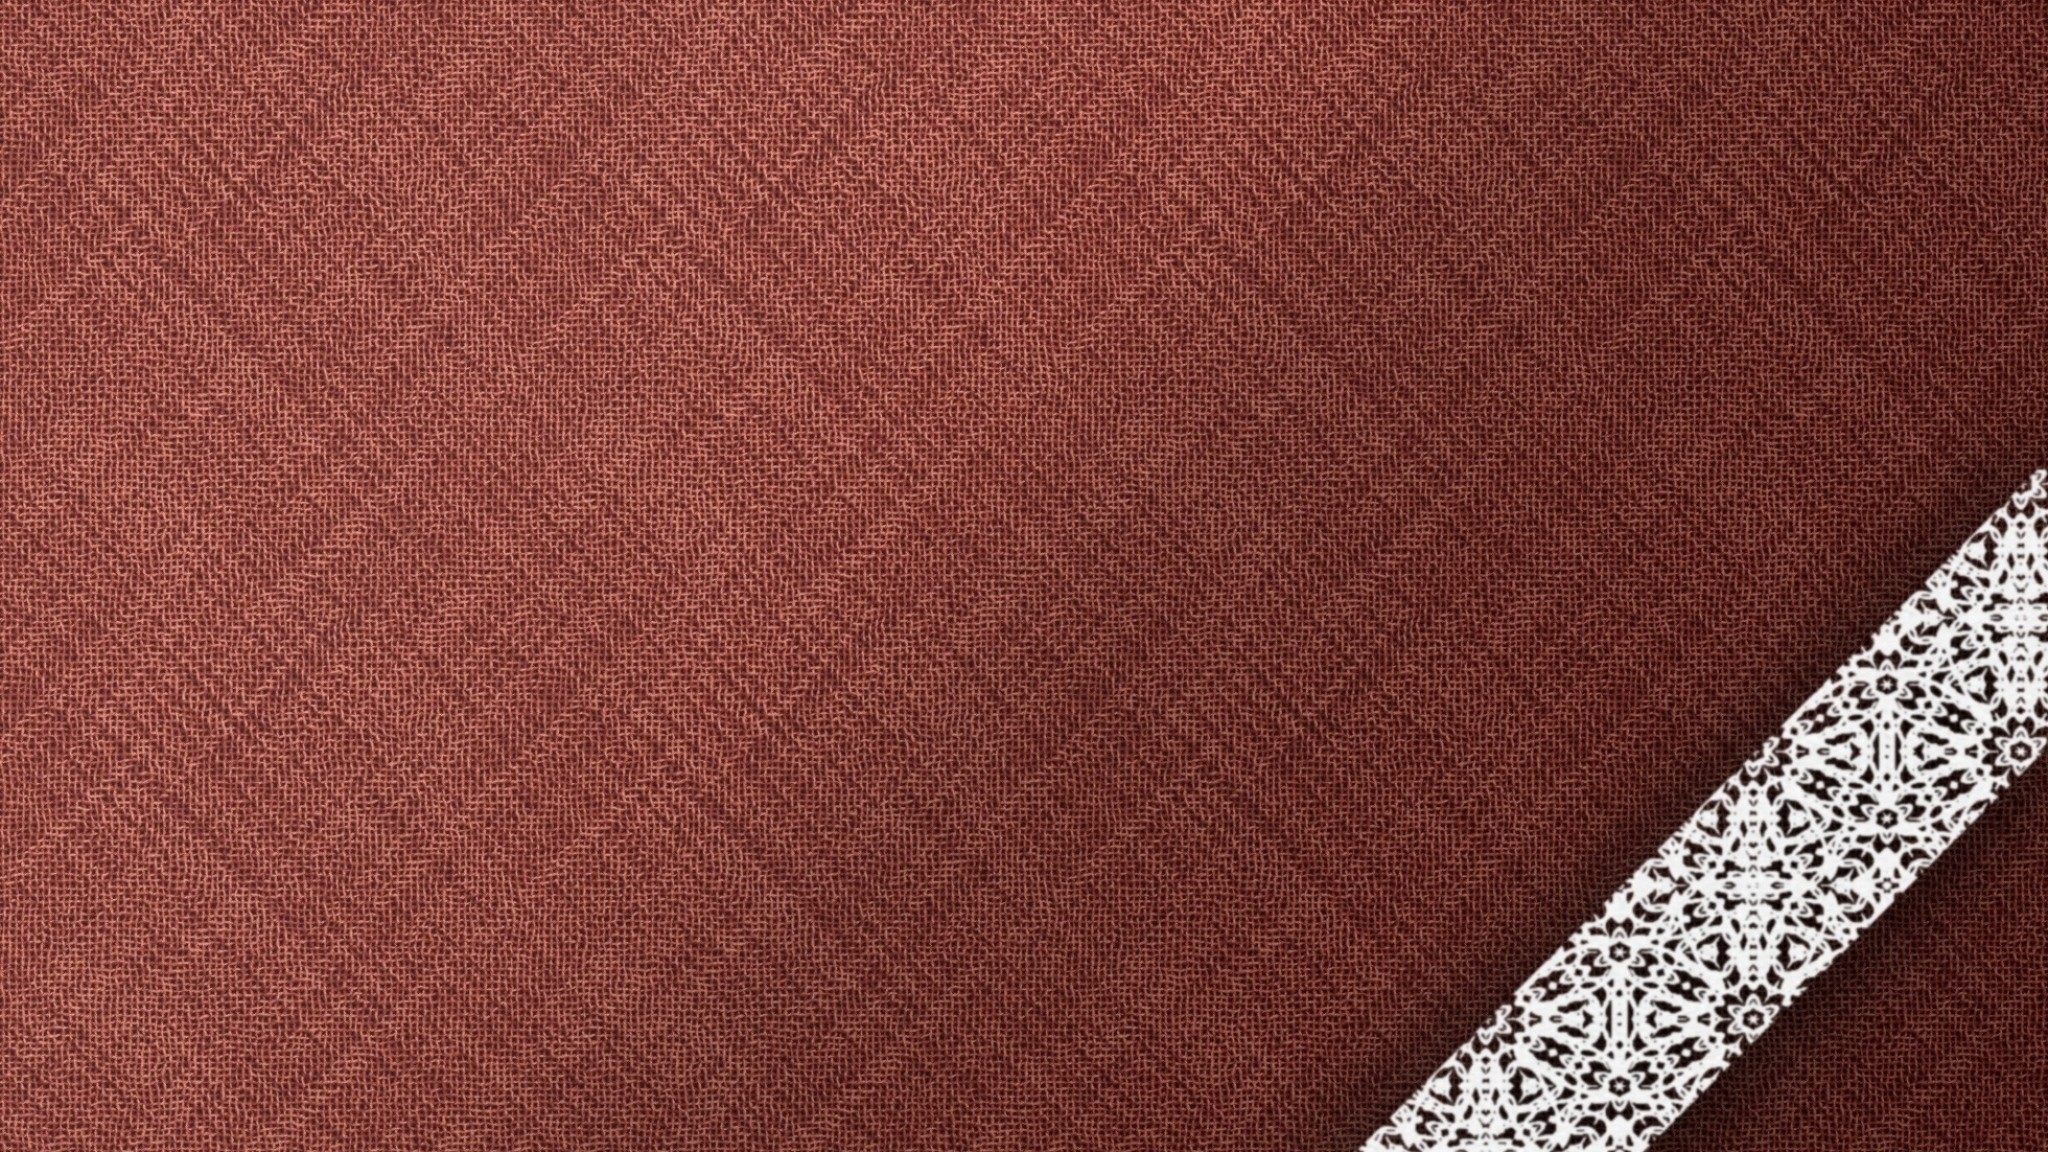 2048x1152  Wallpaper surface, lines, background, lace